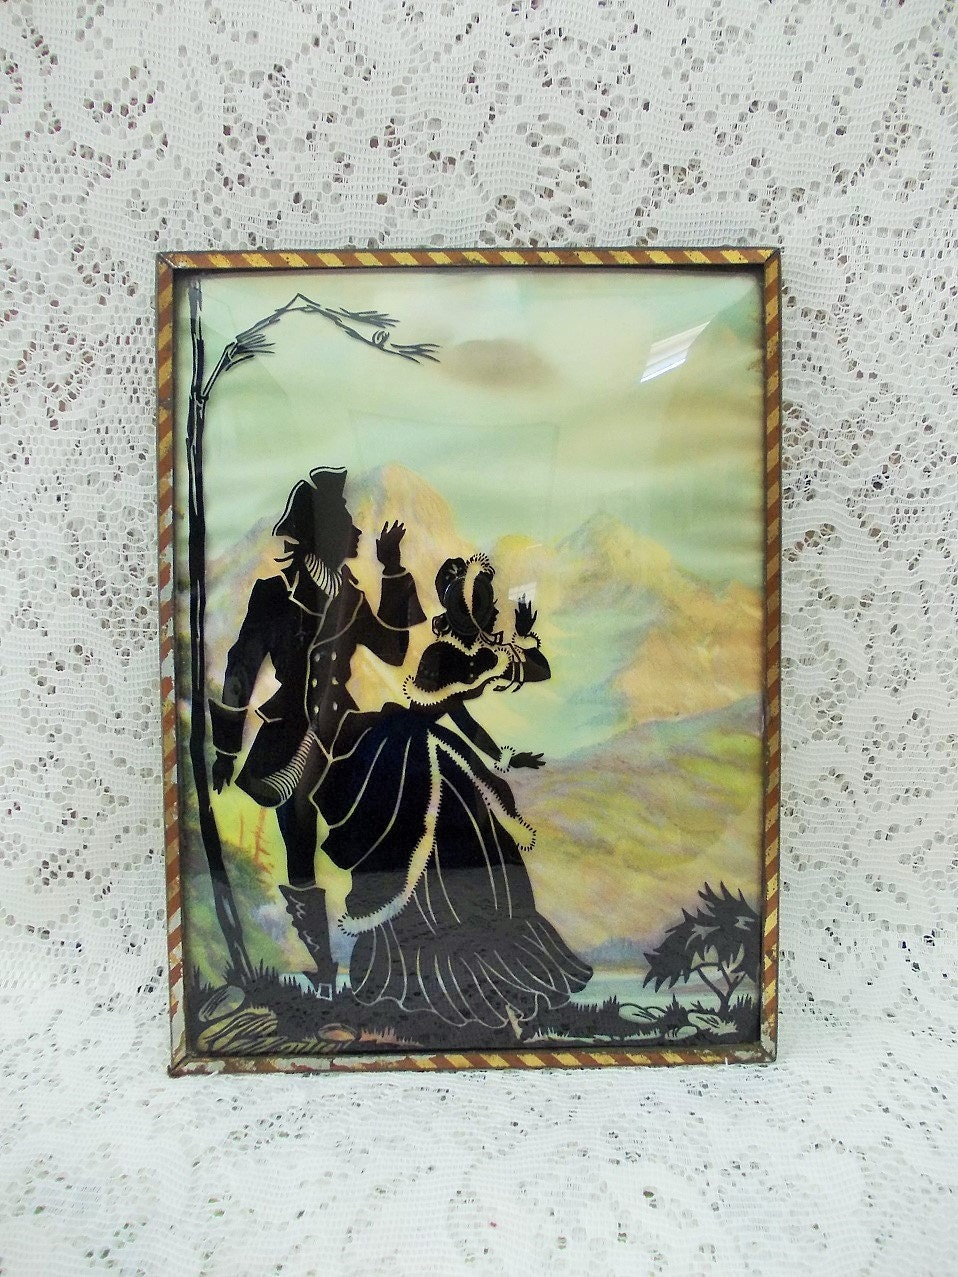 Other Antique Decorative Arts Convex Glass Reverse Painted Vintage Silhouette Framed Picture Antiques